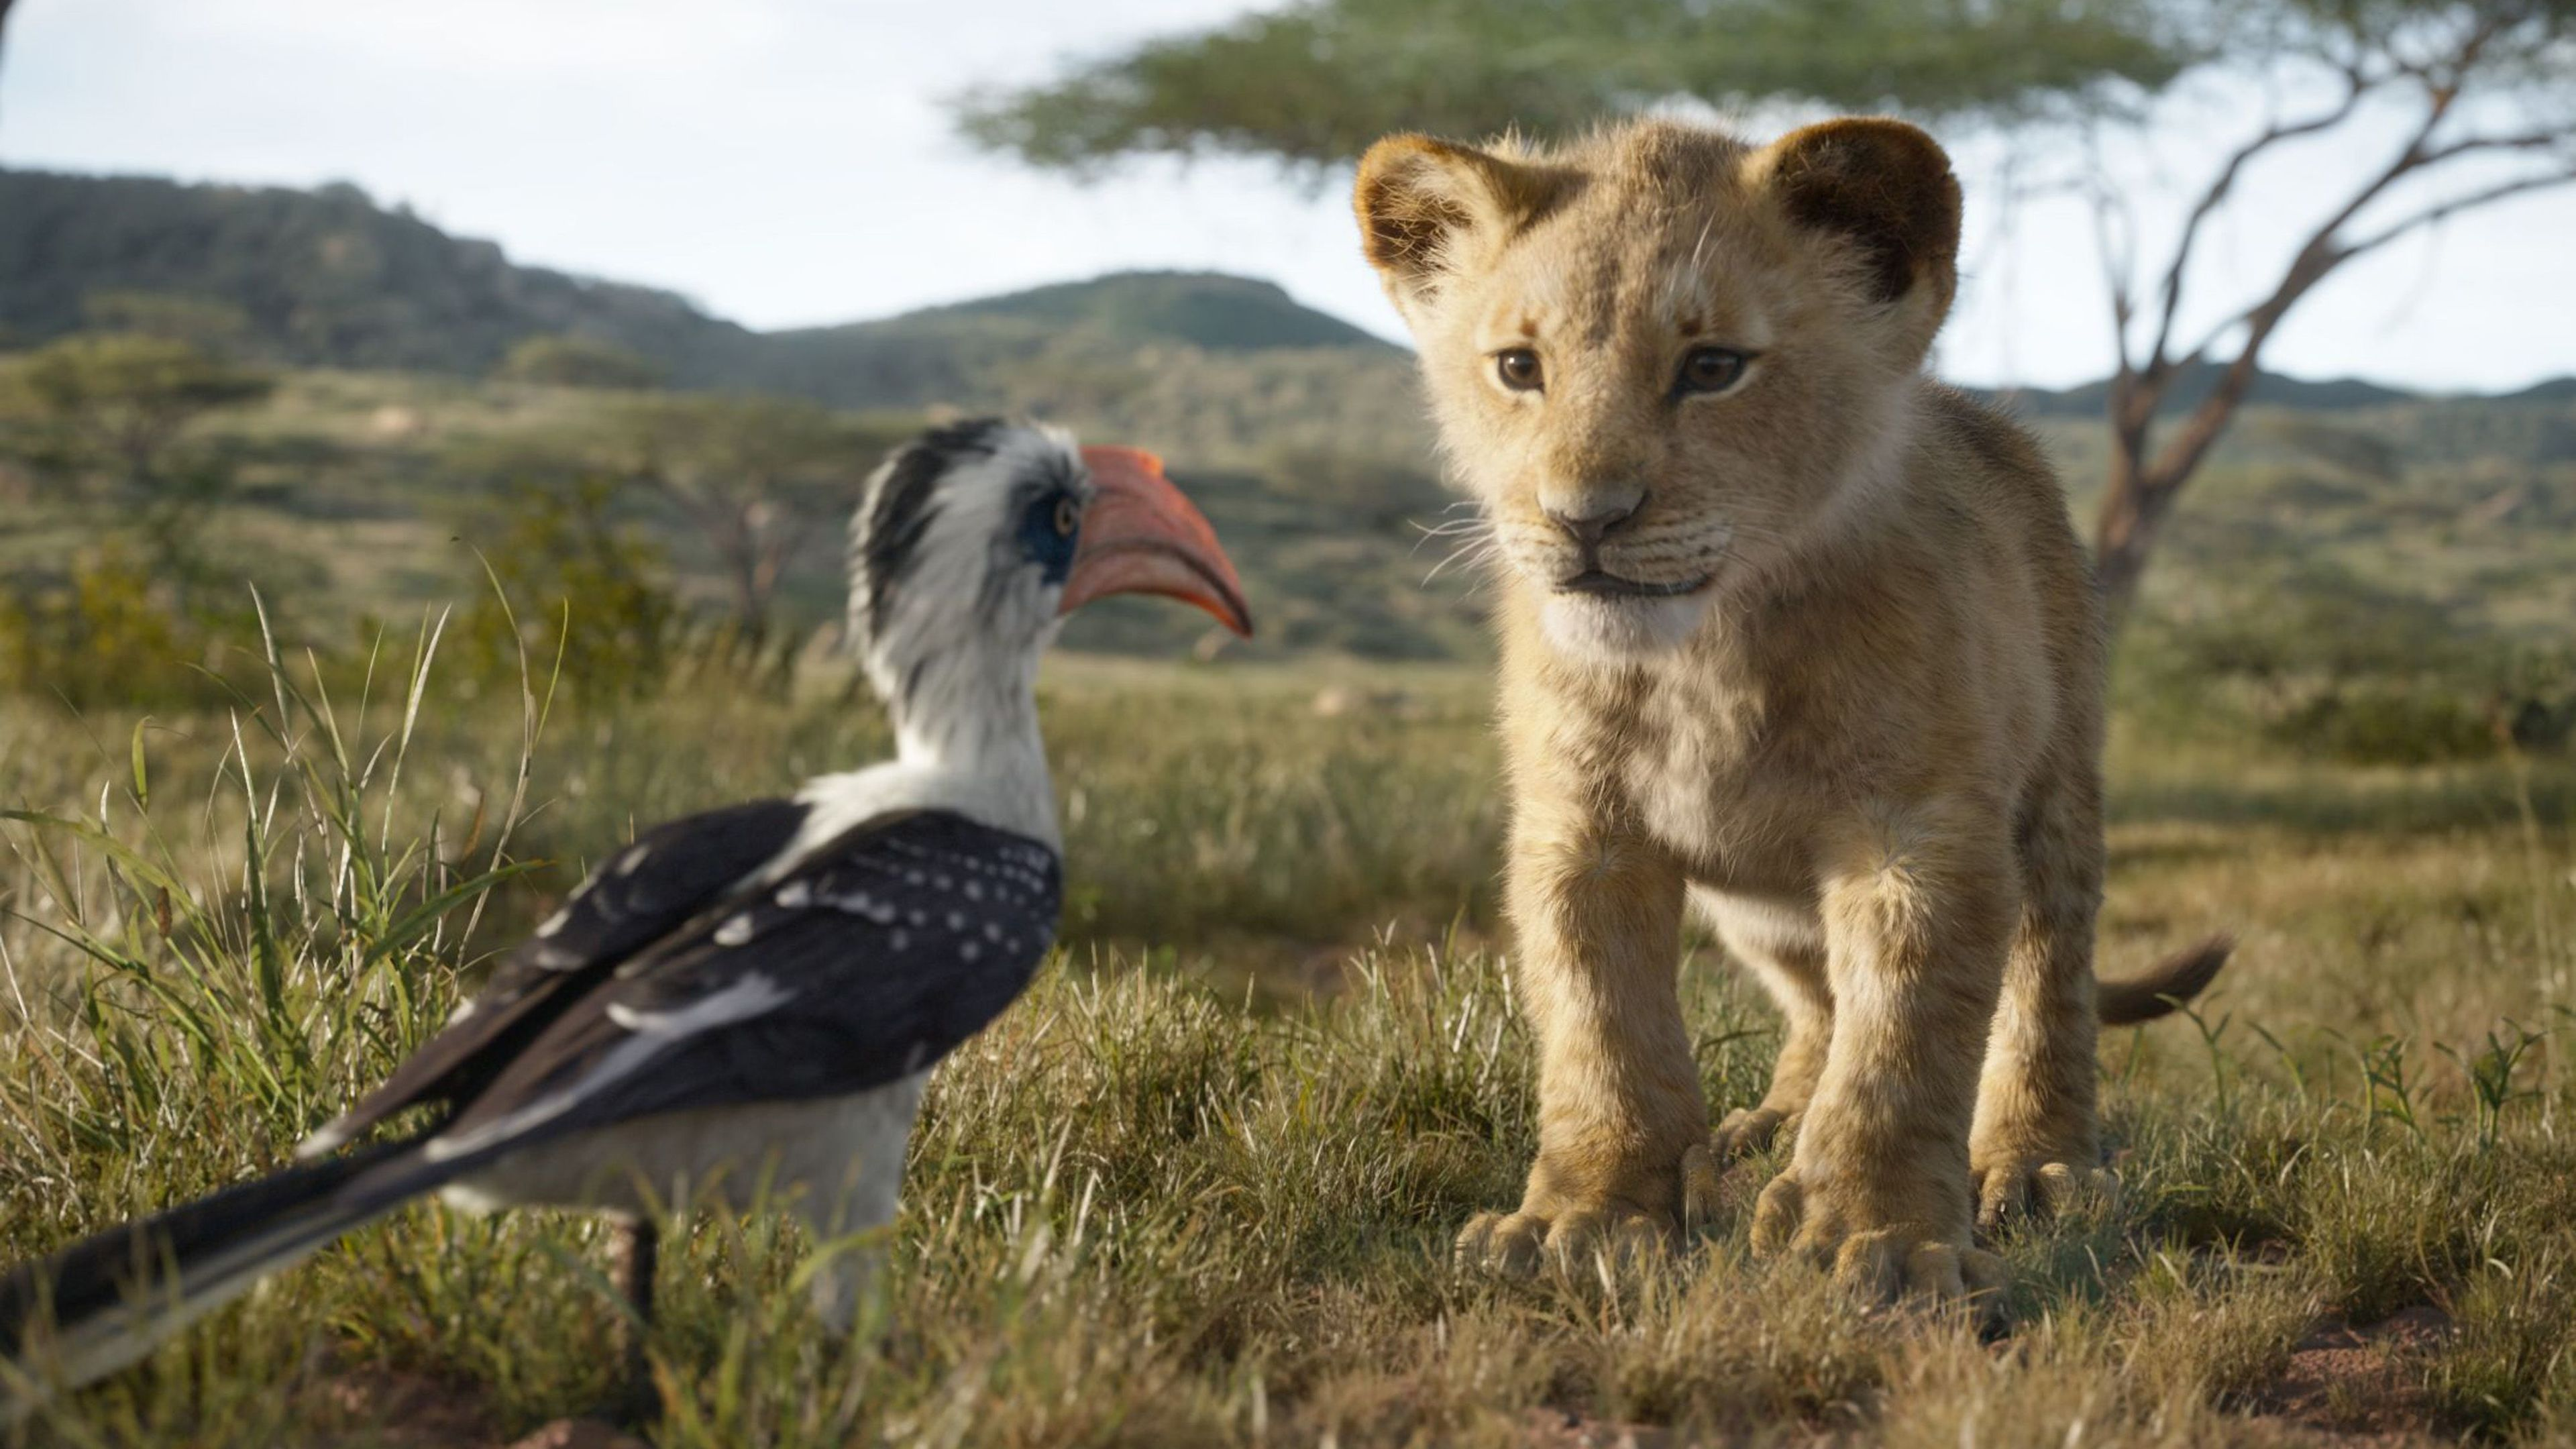 the lion king simba 4k 1558219900 - The Lion King Simba 4k - the lion king wallpapers, simba wallpapers, movies wallpapers, lion wallpapers, hd-wallpapers, disney wallpapers, 4k-wallpapers, 2019 movies wallpapers